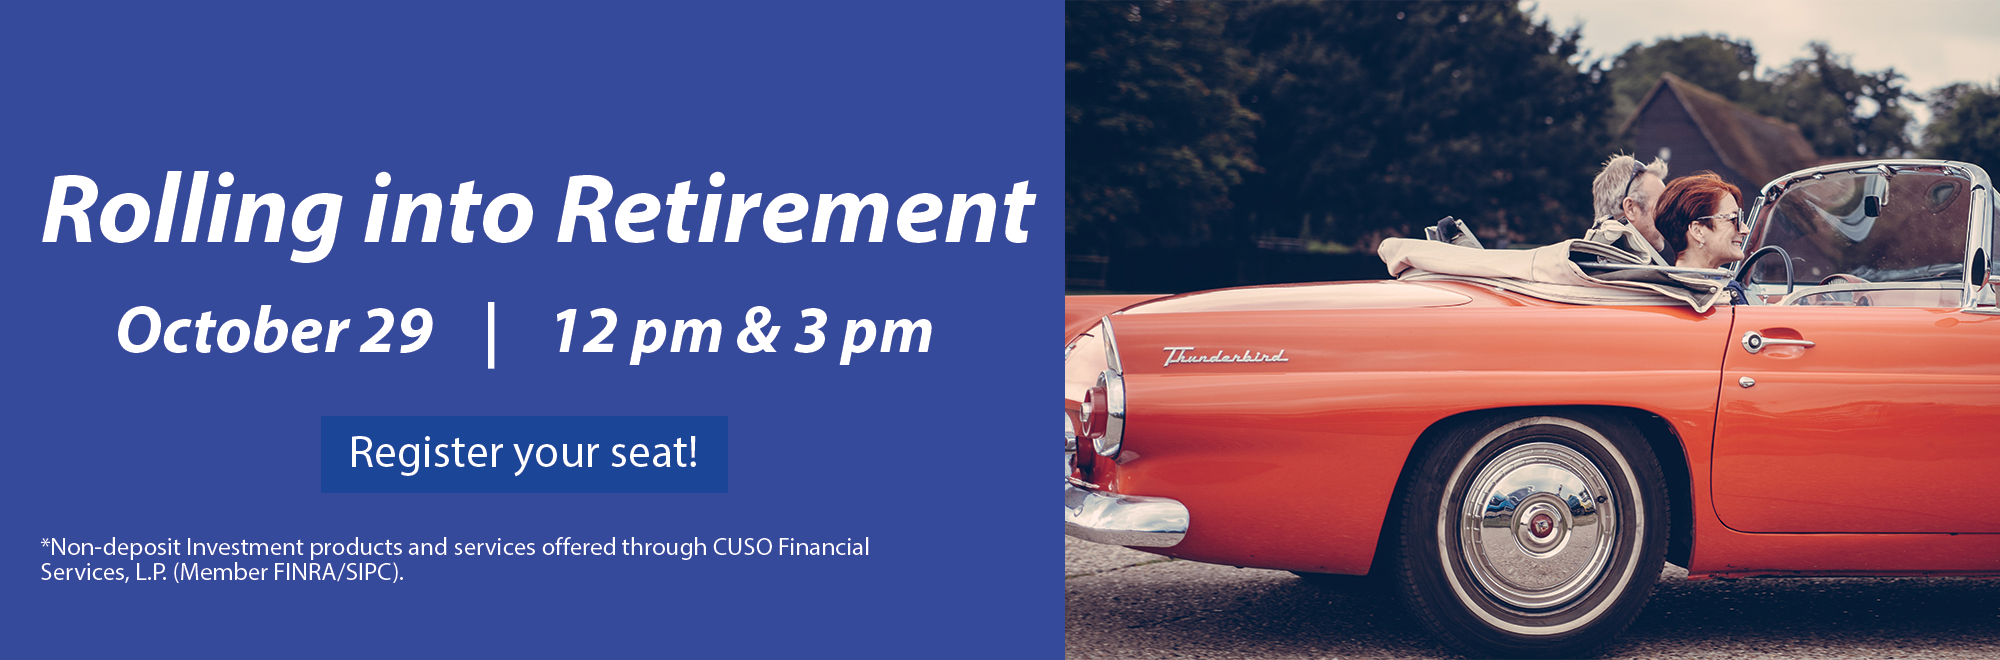 """Register for """"Rolling into Retirement"""" on October 29th at 12pm and 3pm"""